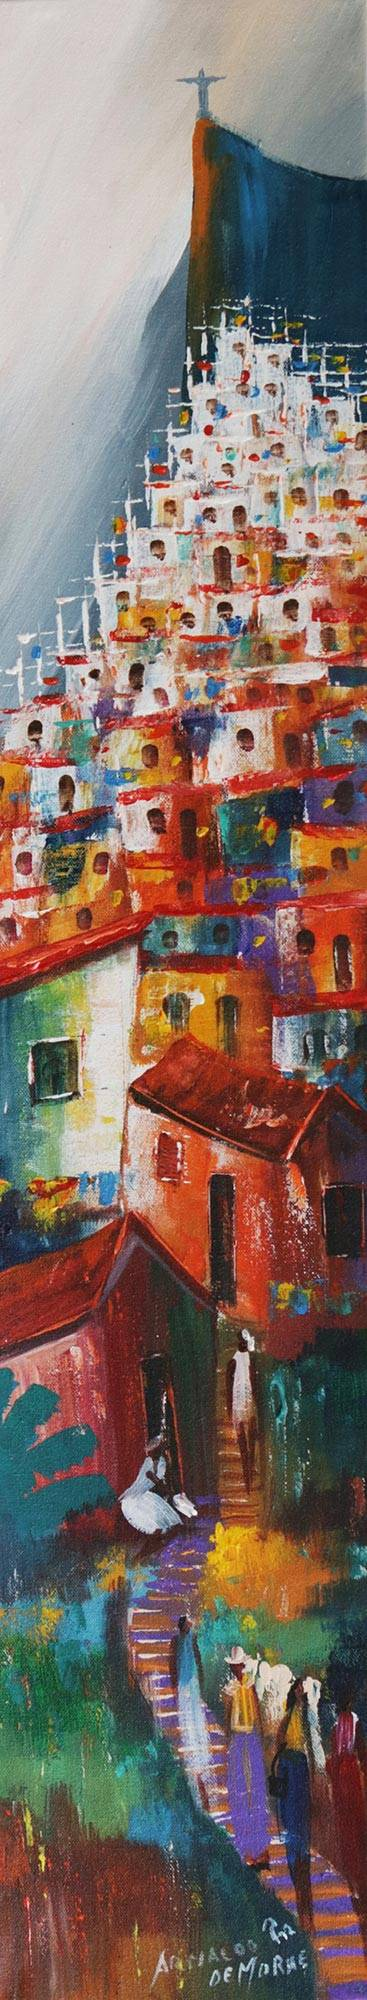 'On the Rise of the Hill I' - Colorful Cityscape Expressionist Painting from Brazil